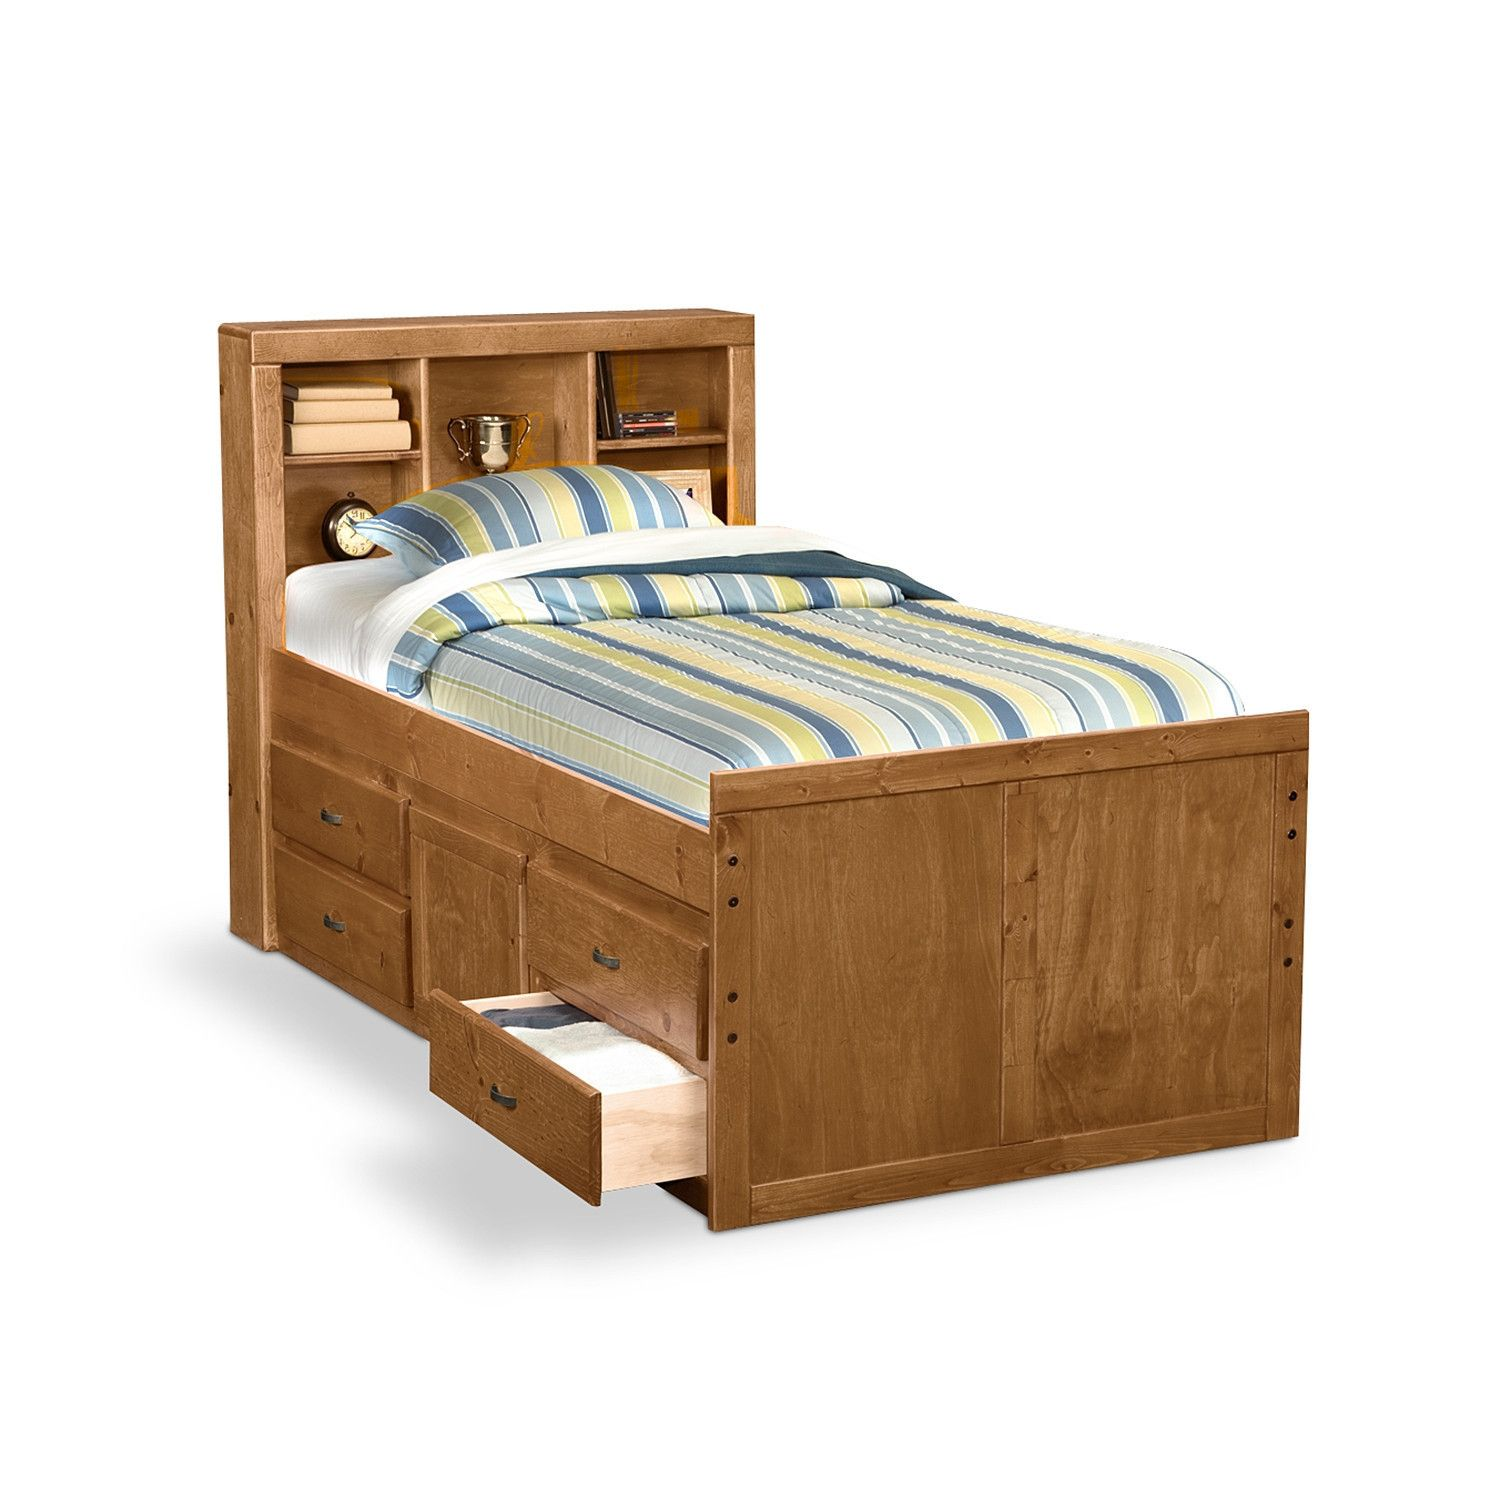 30 New Full Size Bed Frame With Storage And Headboard Inspiration